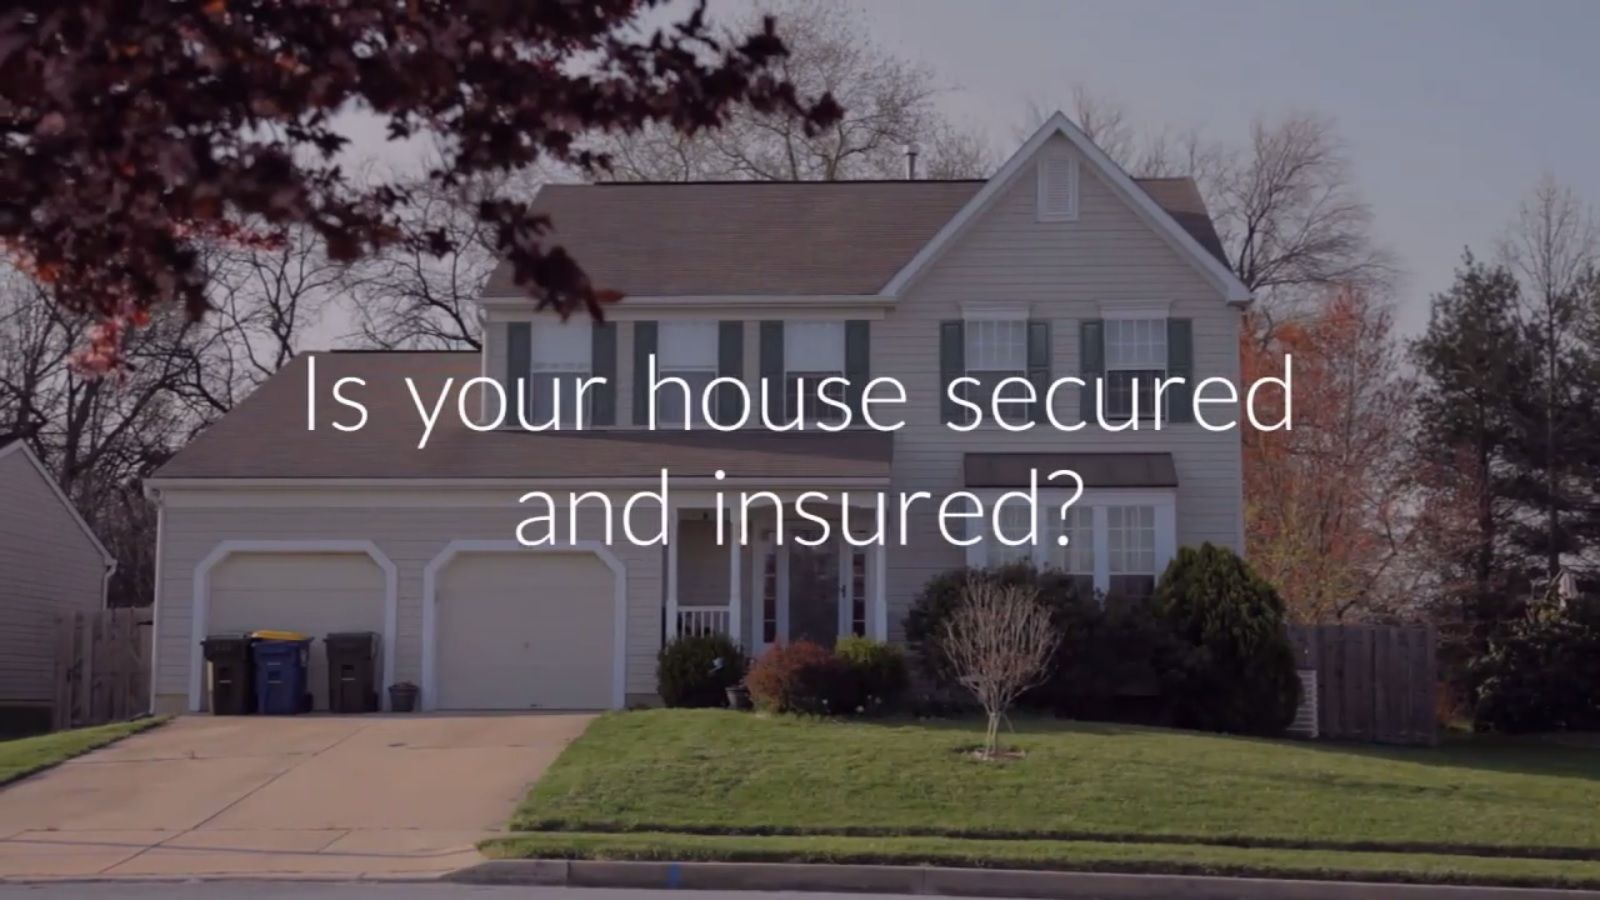 Finding The Right Home Insurance Ensures Your Property S Security Real Estate Real Estate Marketing Home Insurance